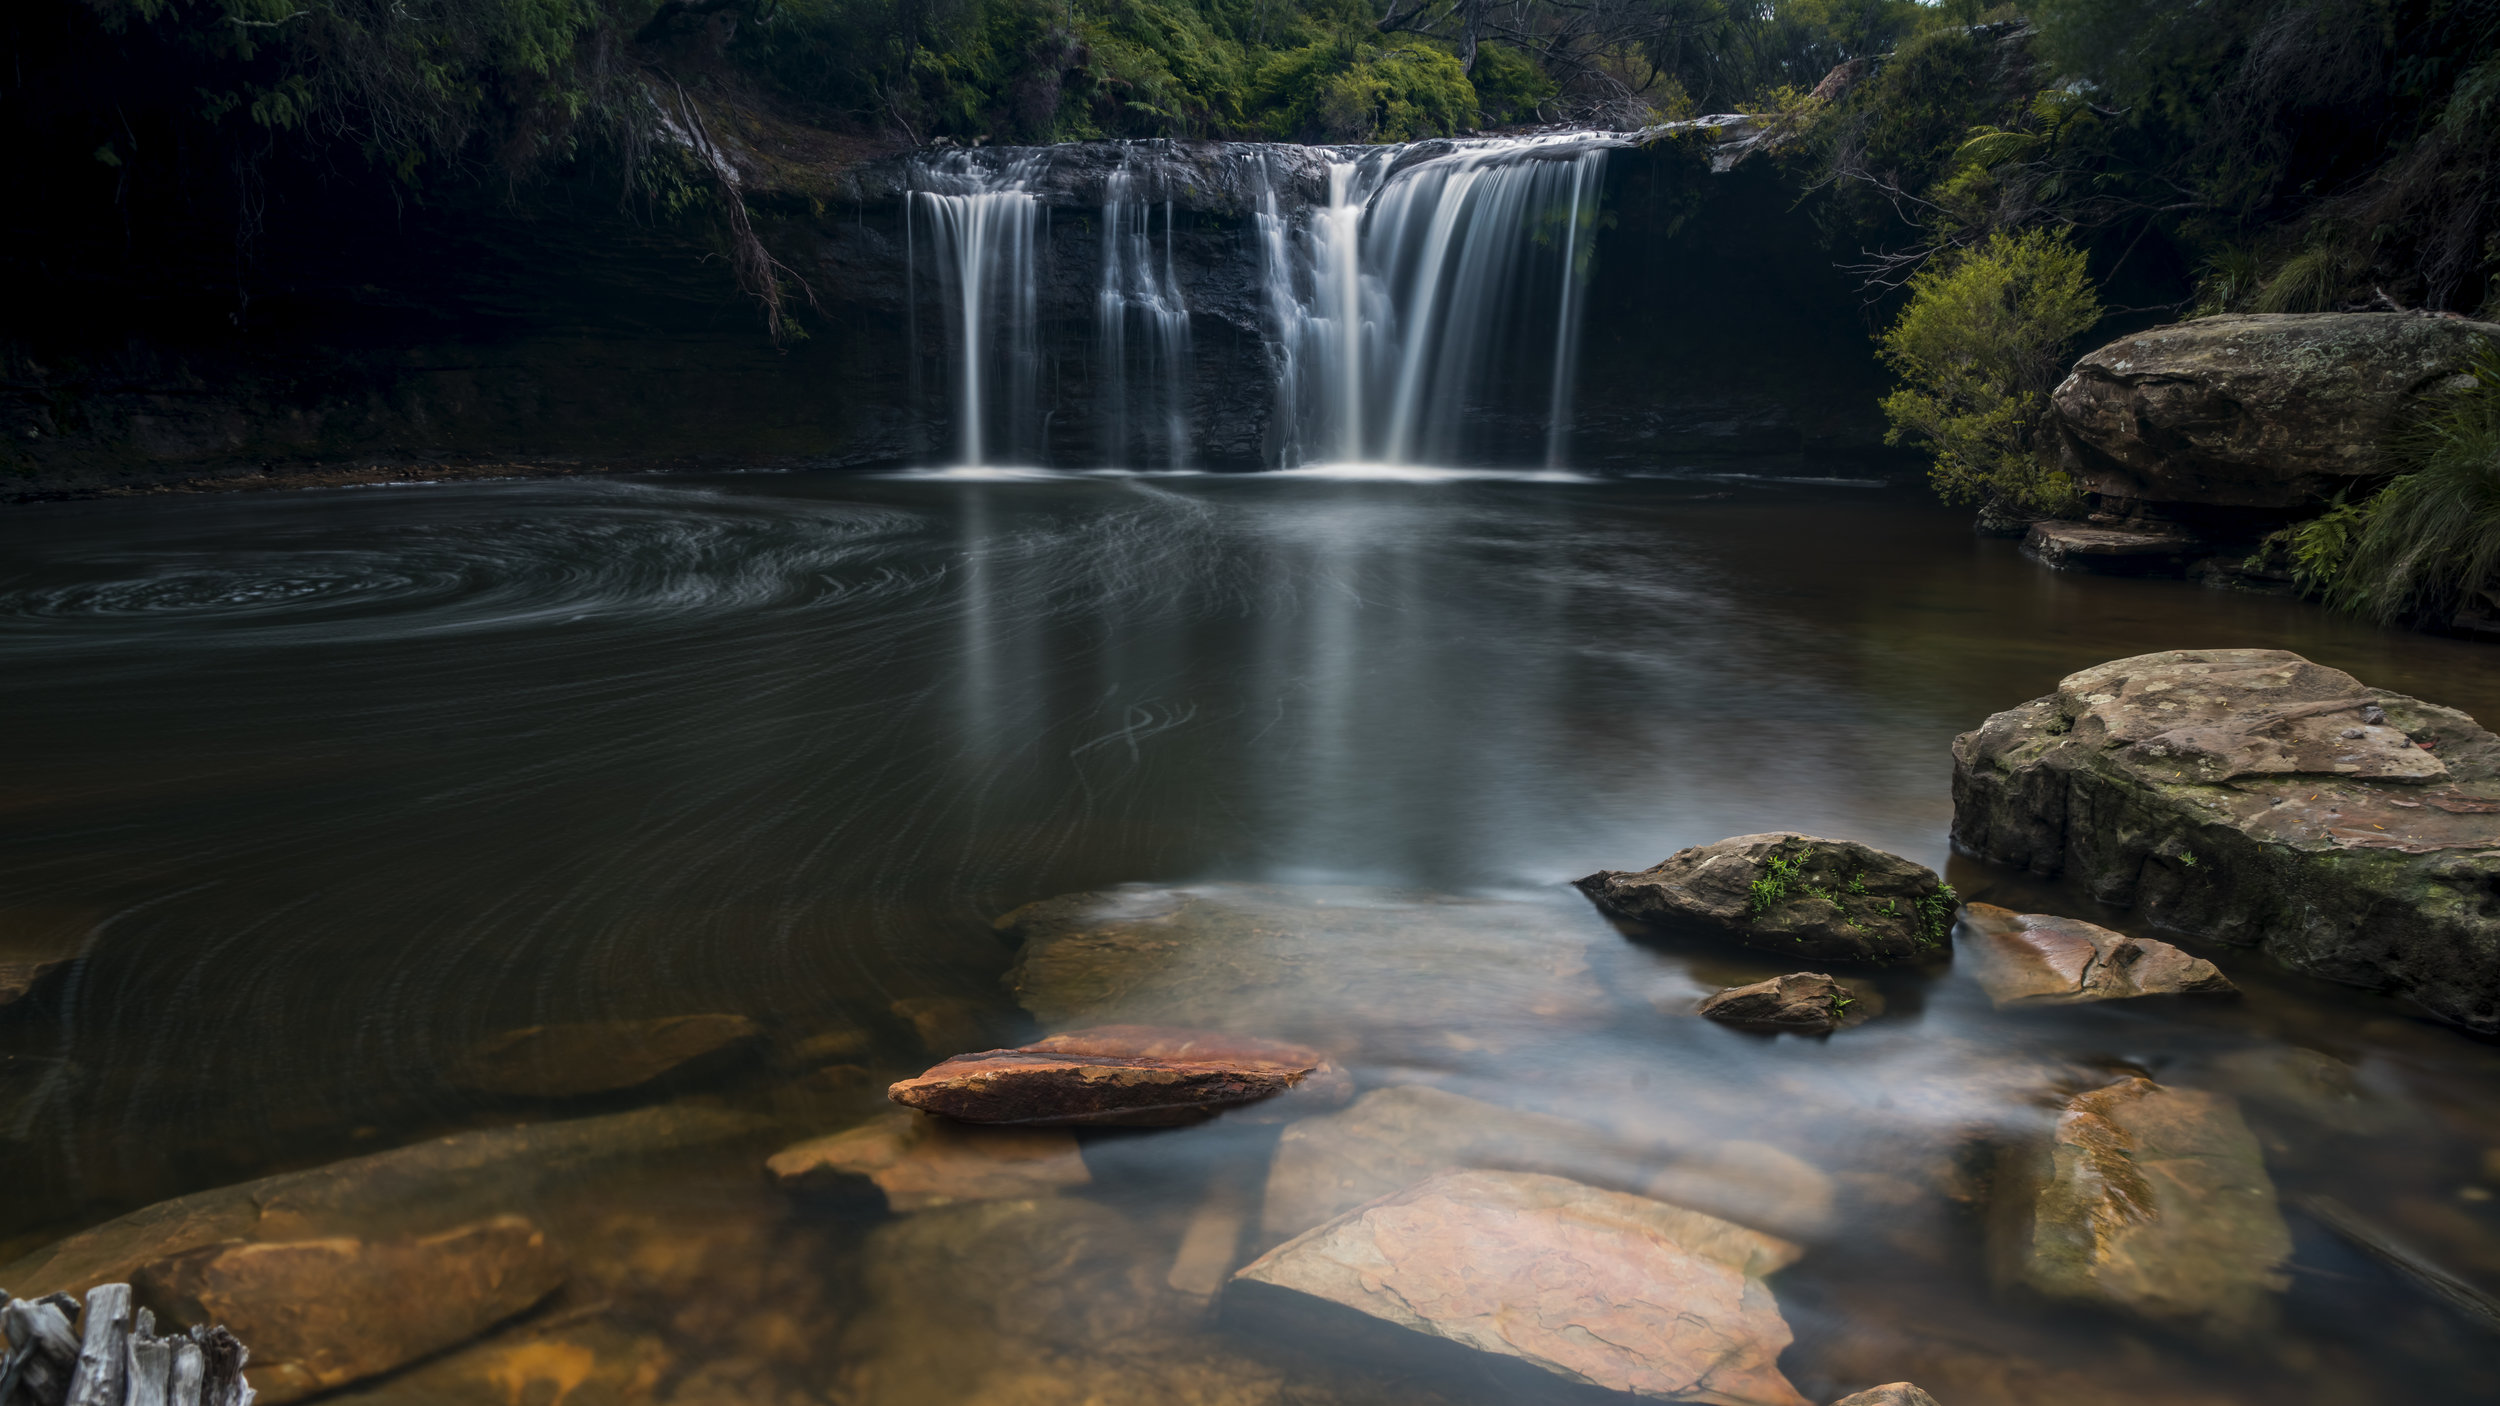 One of the more peaceful waterfall spots on the south coast, Nellies Glen doesn't have much going for foreground interest. I used a polariser to reveal the colourful stones under the surface and used them for my foreground.